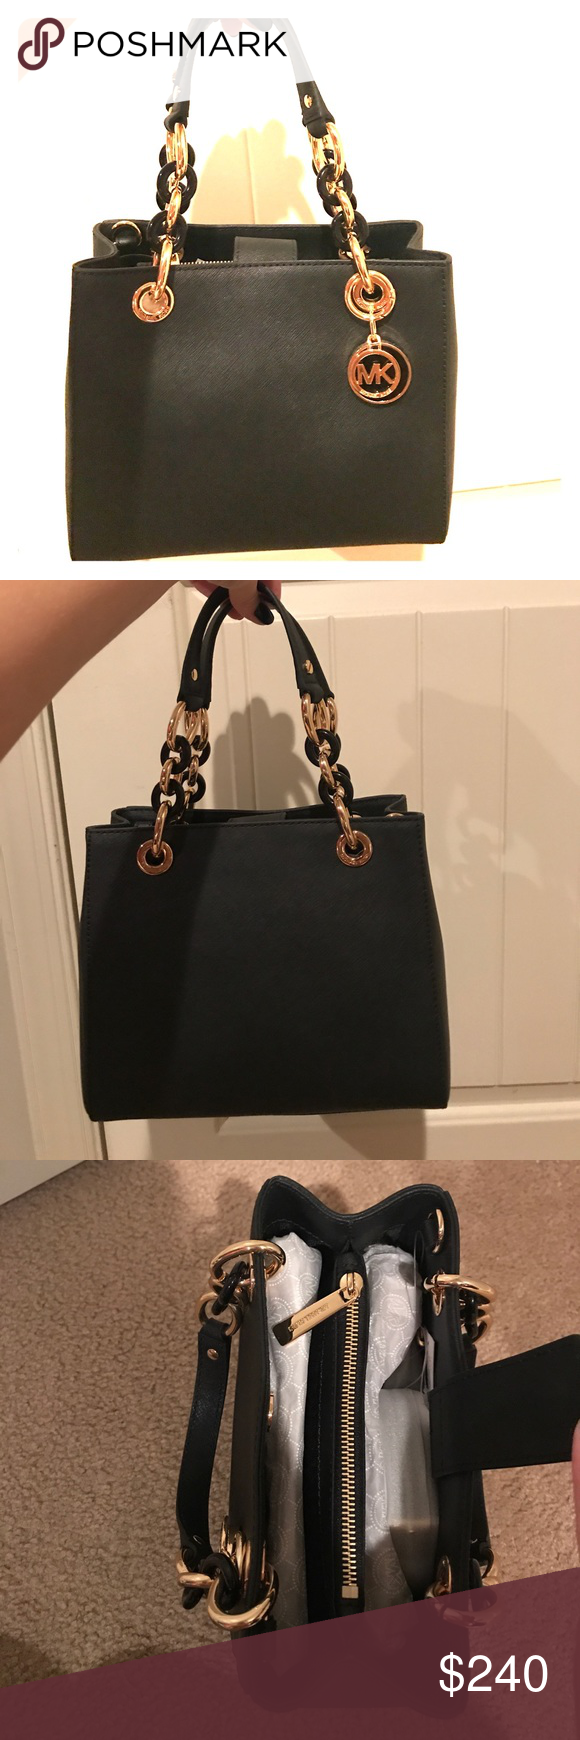 b42806e912bdaf Authentic brand new Michael Kors handbag Black handbag with gold/black chain  handles, BRAND NEW with tags. Never used! Strap included. Michael Kors Bags